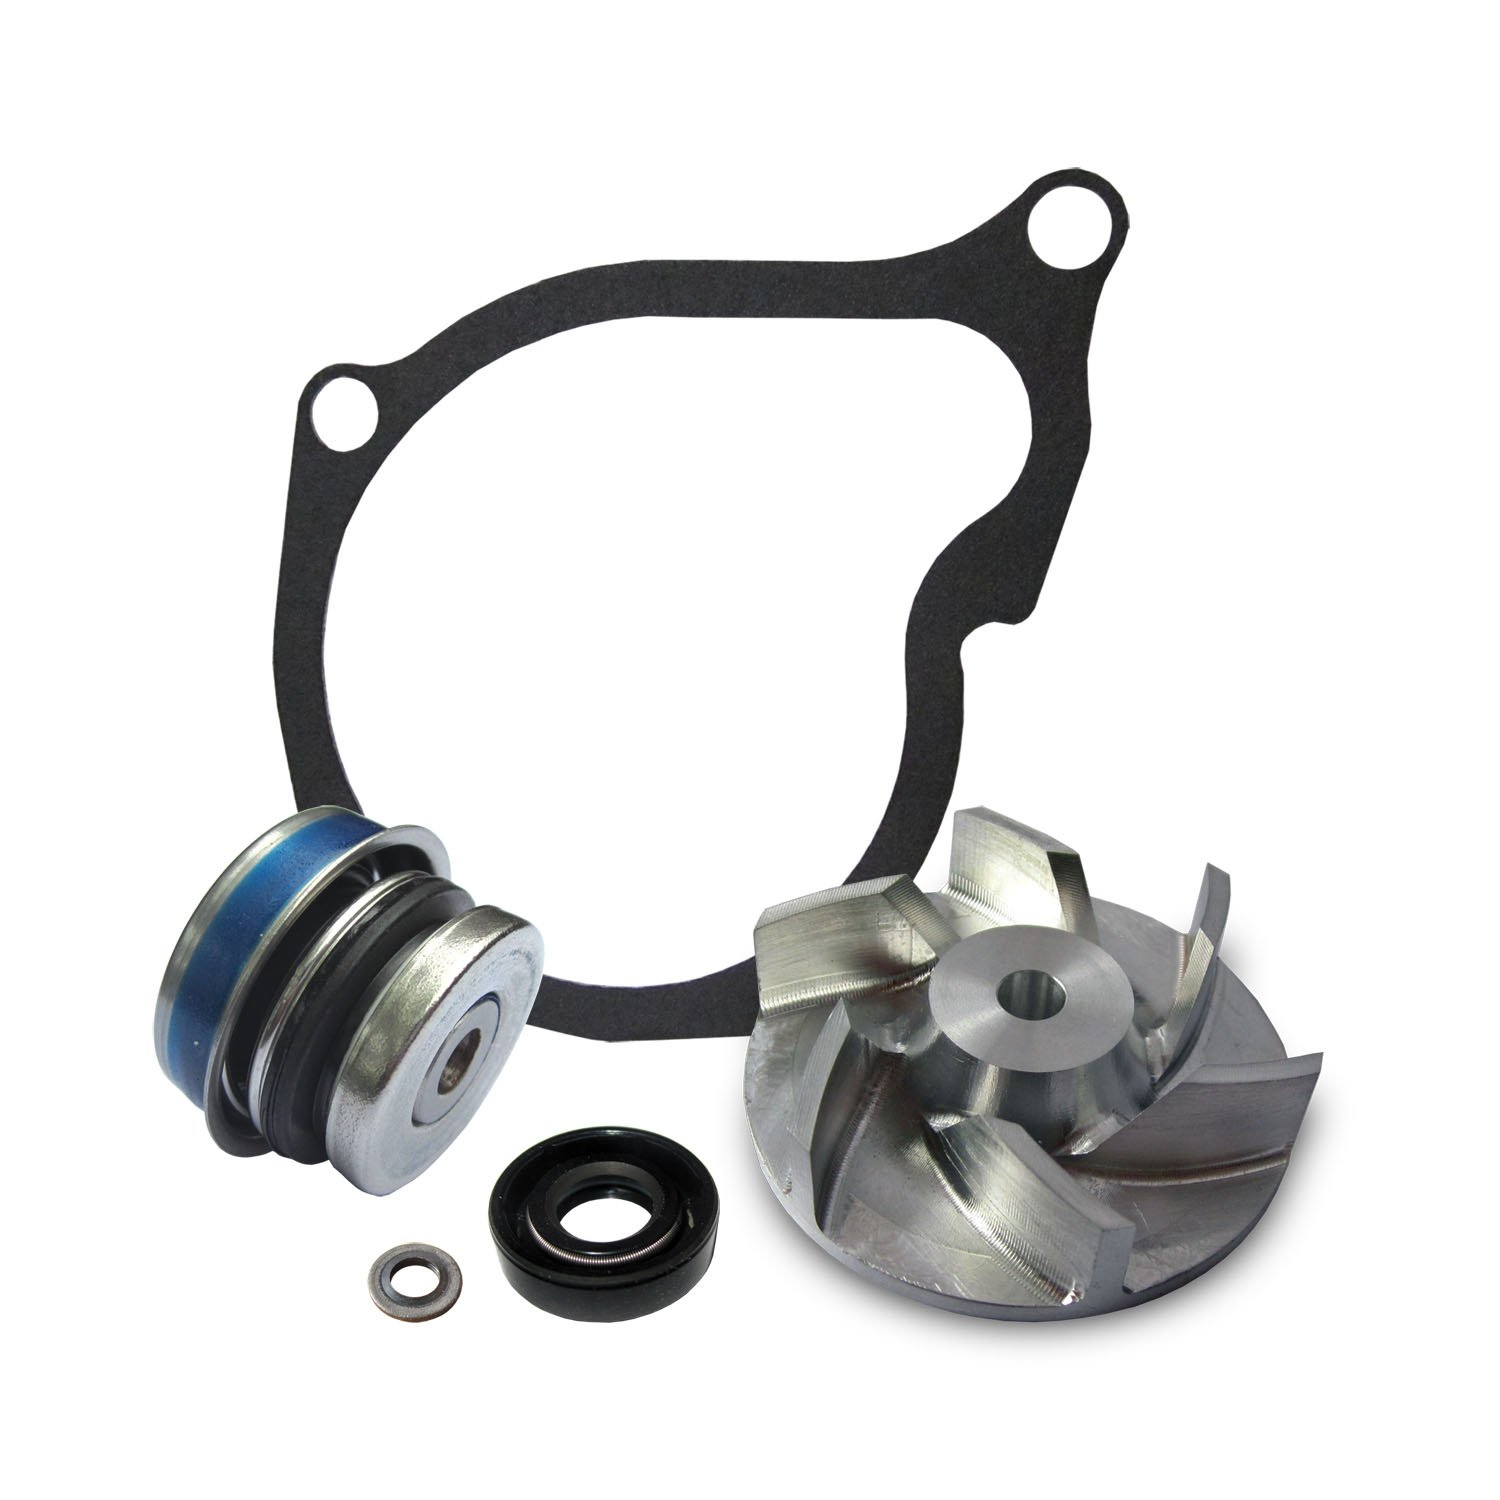 Polaris Sportsman 400 500 Water Pump Rebuild Kit with Billet Impeller polaris sportsman 400 500 water pump rebuild kit with billet impeller